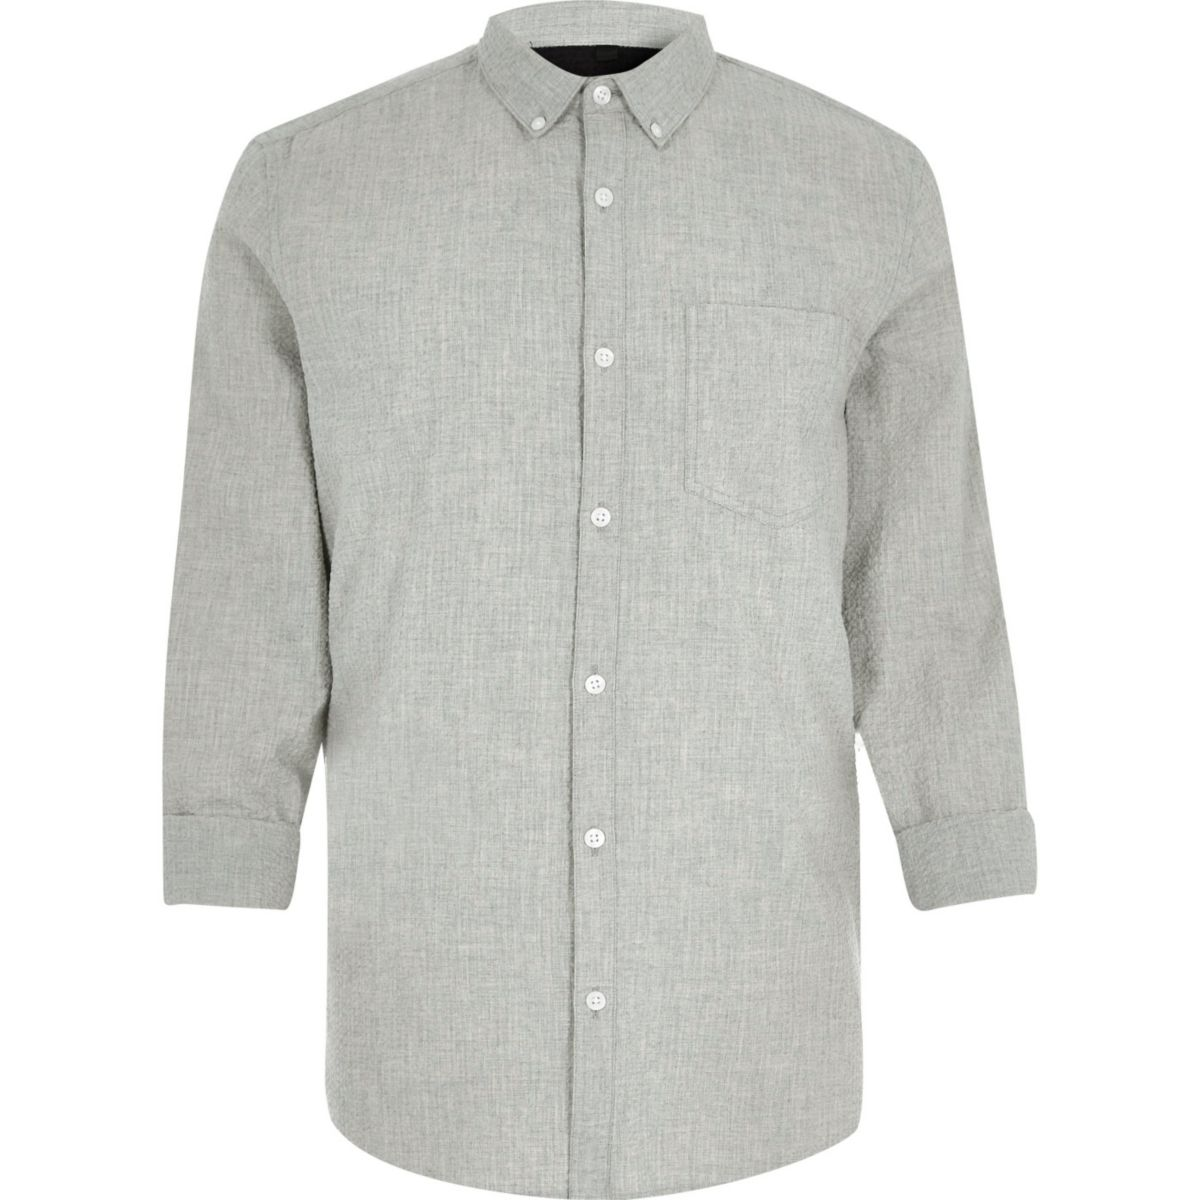 Grey seersucker shirt shirts sale men for Mens seersucker shirts on sale